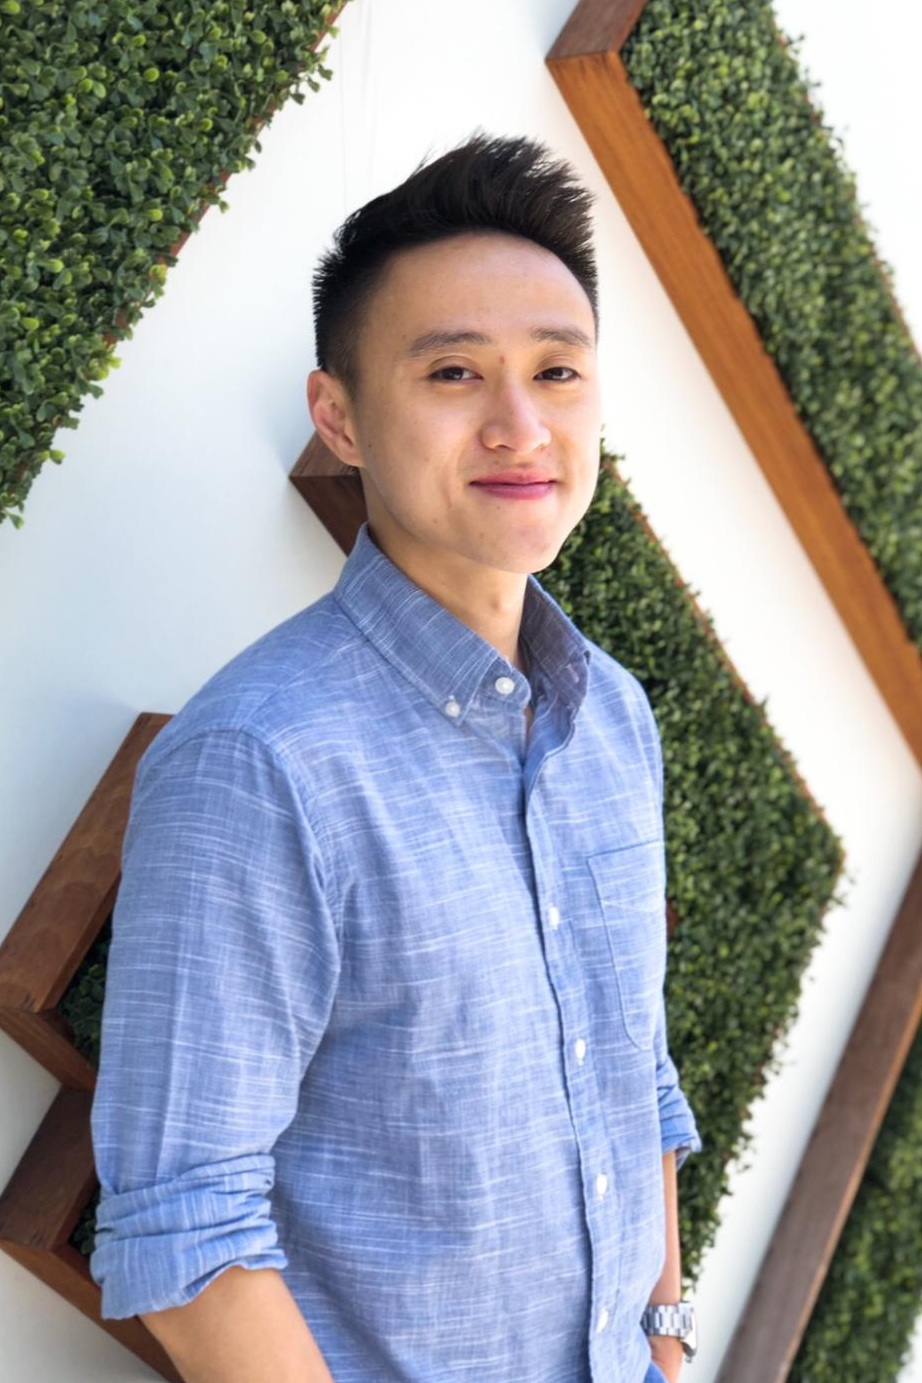 Jason Lu, MD - Medical School: State University of New York, DownstateResidency: UCLA Medical Center/Olive ViewYear Joined: 2019Special Interests: Basketball, BBQ, Movies, Travel